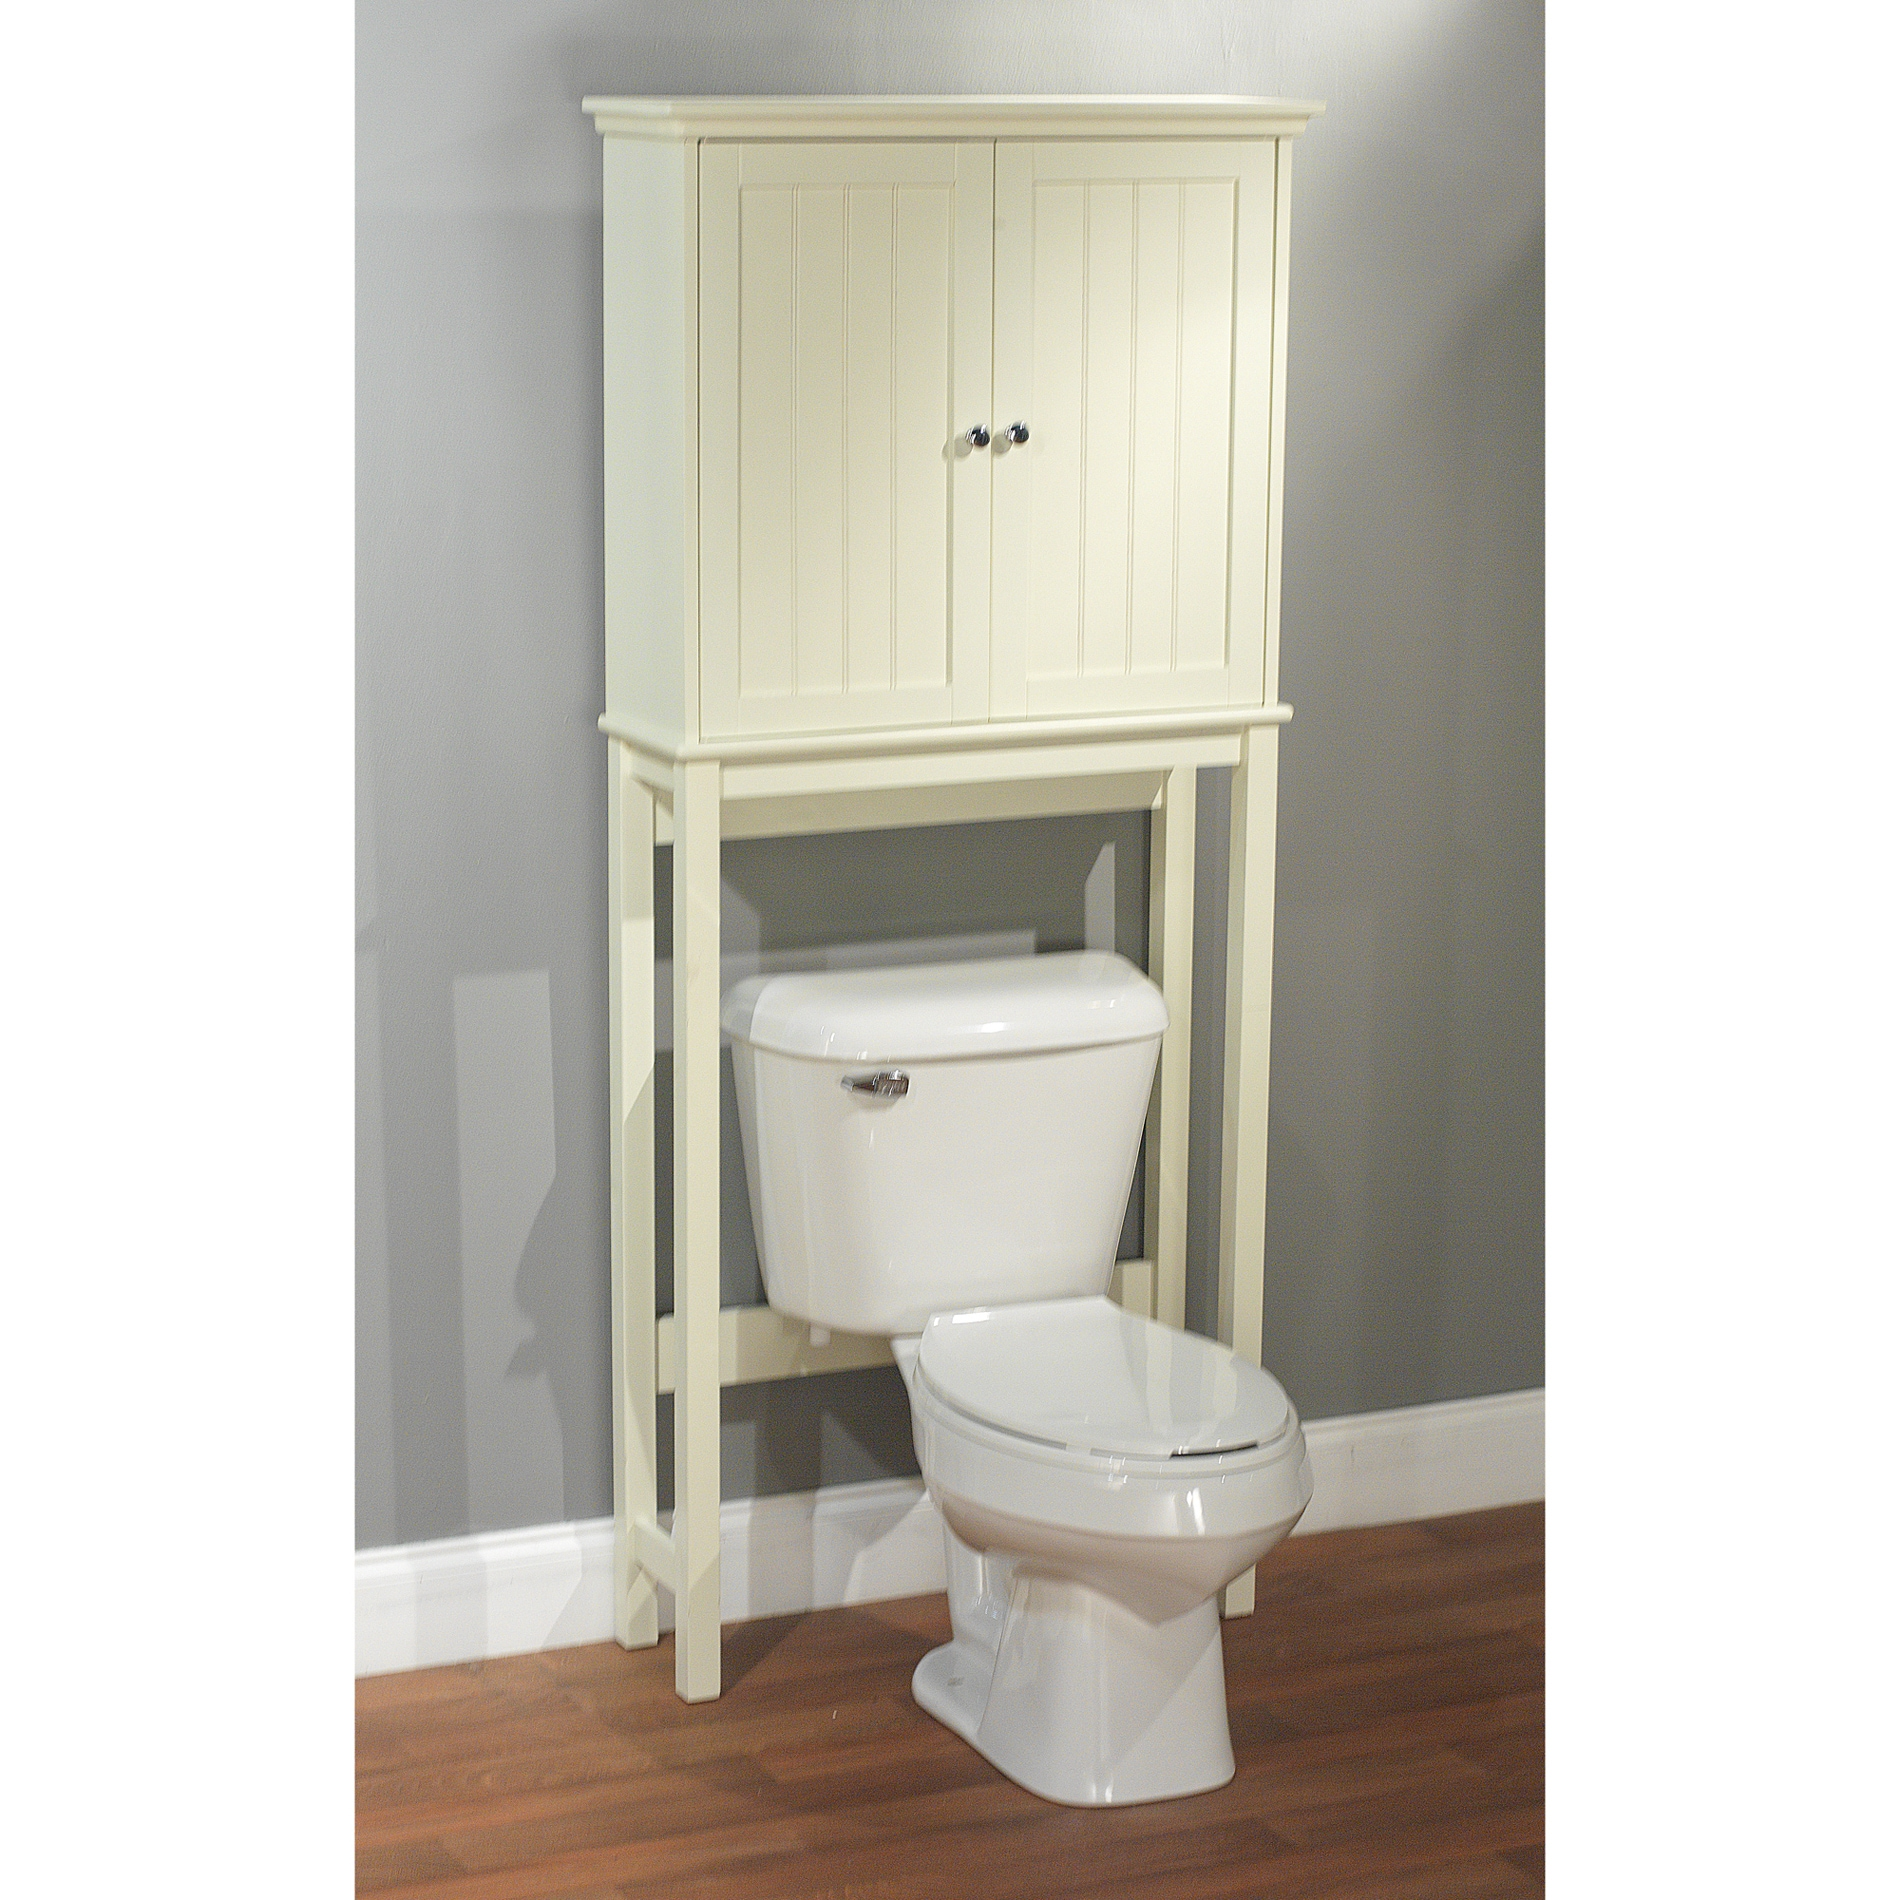 Remarkable Bathroom Space Saver Cabinet 1900 x 1900 · 2705 kB · jpeg